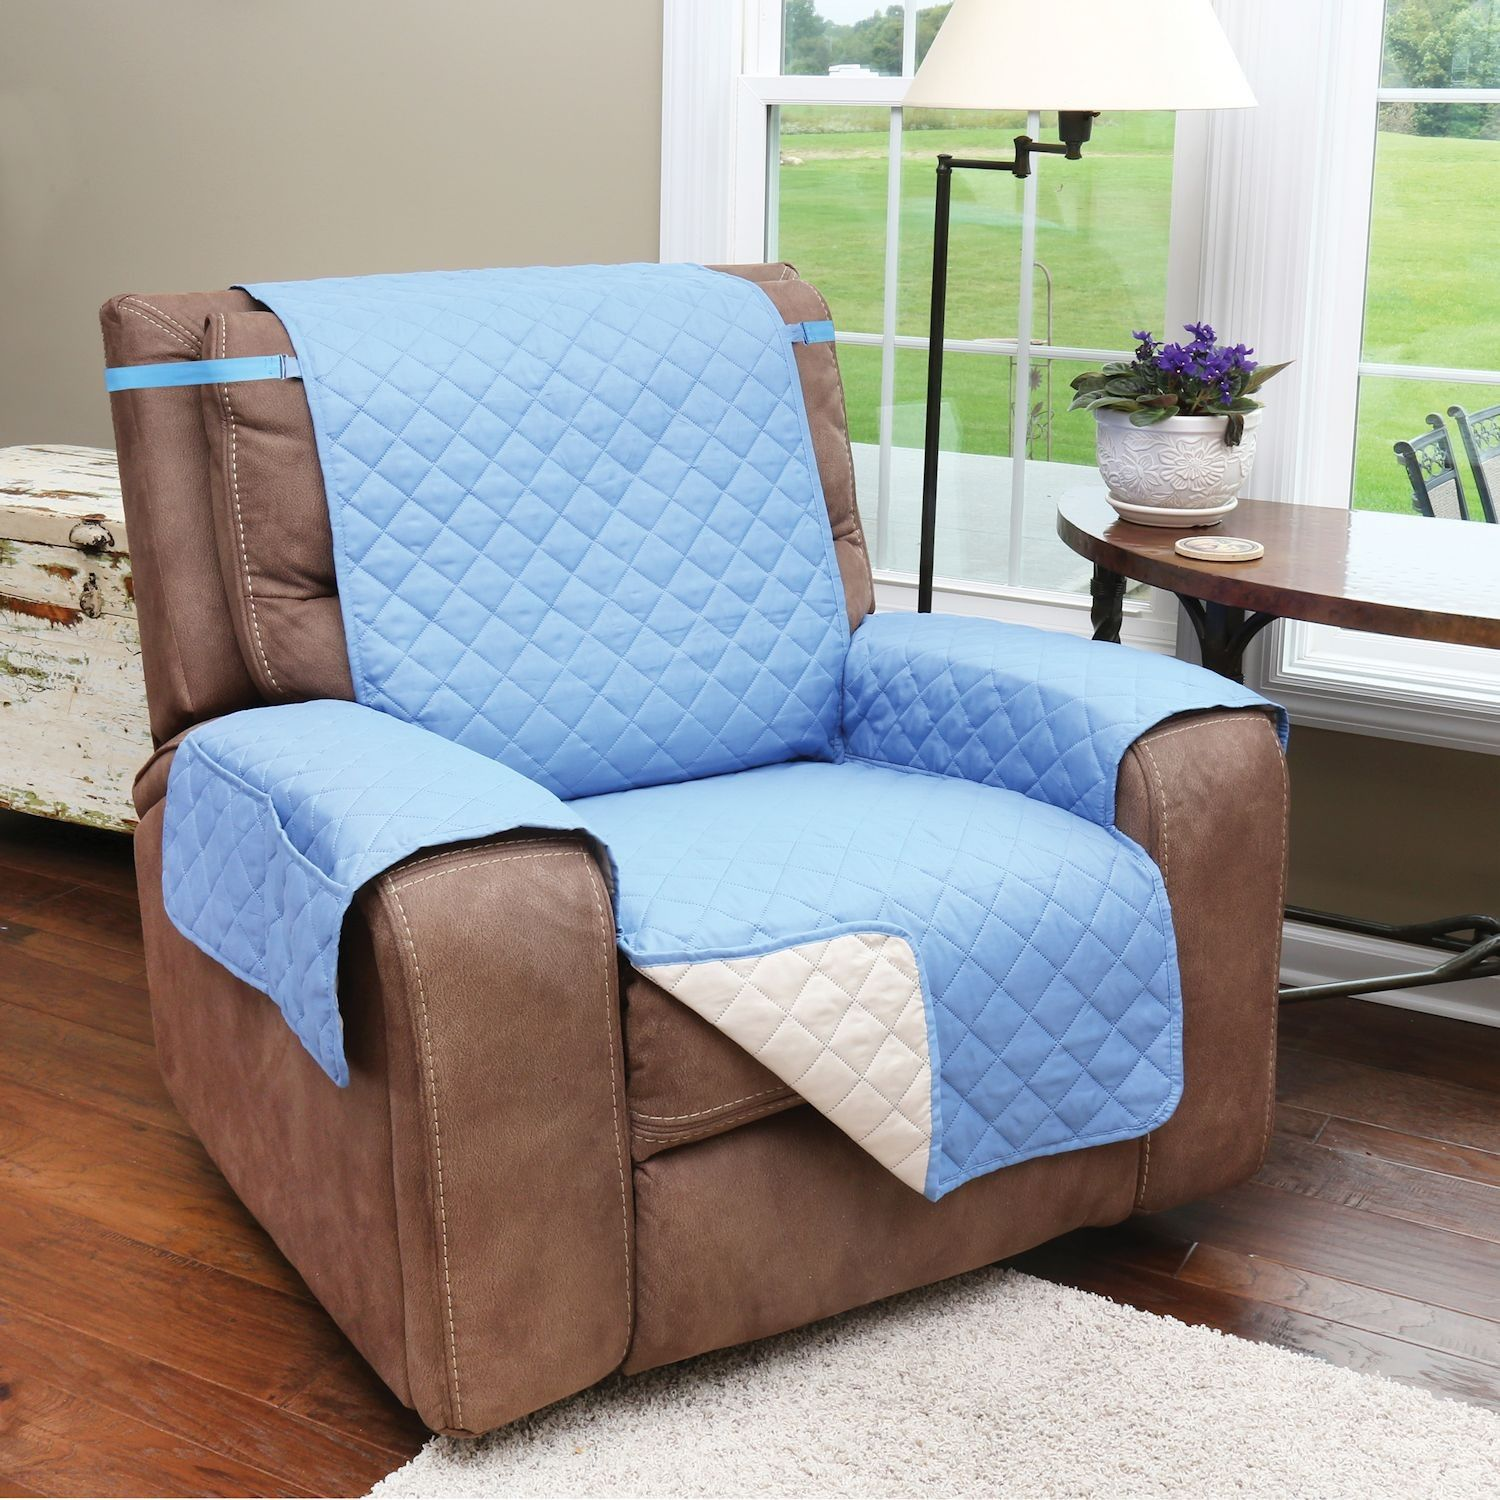 Support Plus Reversible Quilted Microfiber Recliner Chair